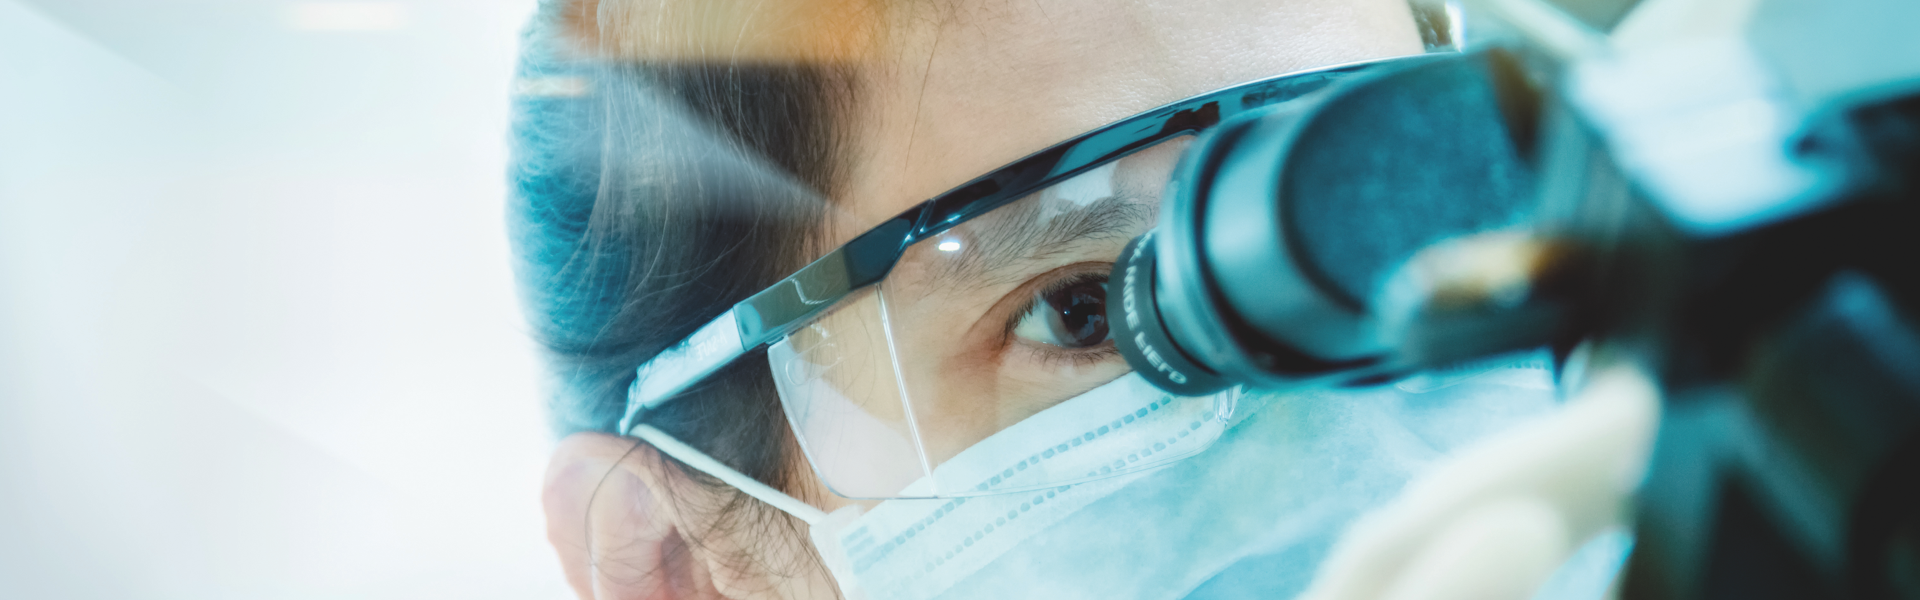 Man wearing surgical mask and safety goggles looking into a microscope